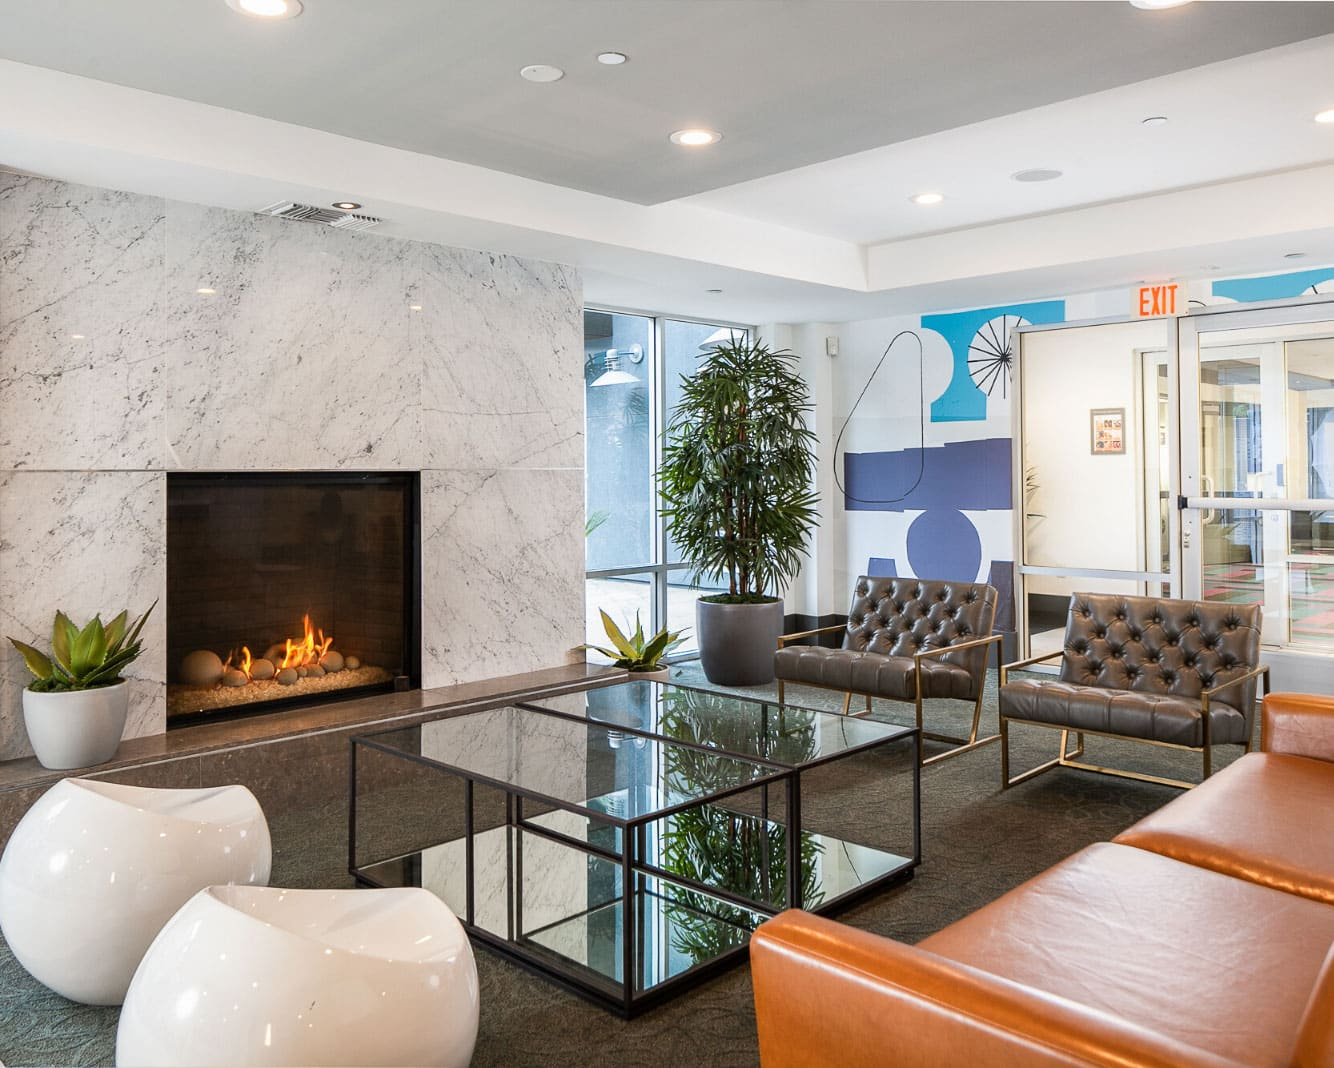 Furnished lobby with fireplace and windows